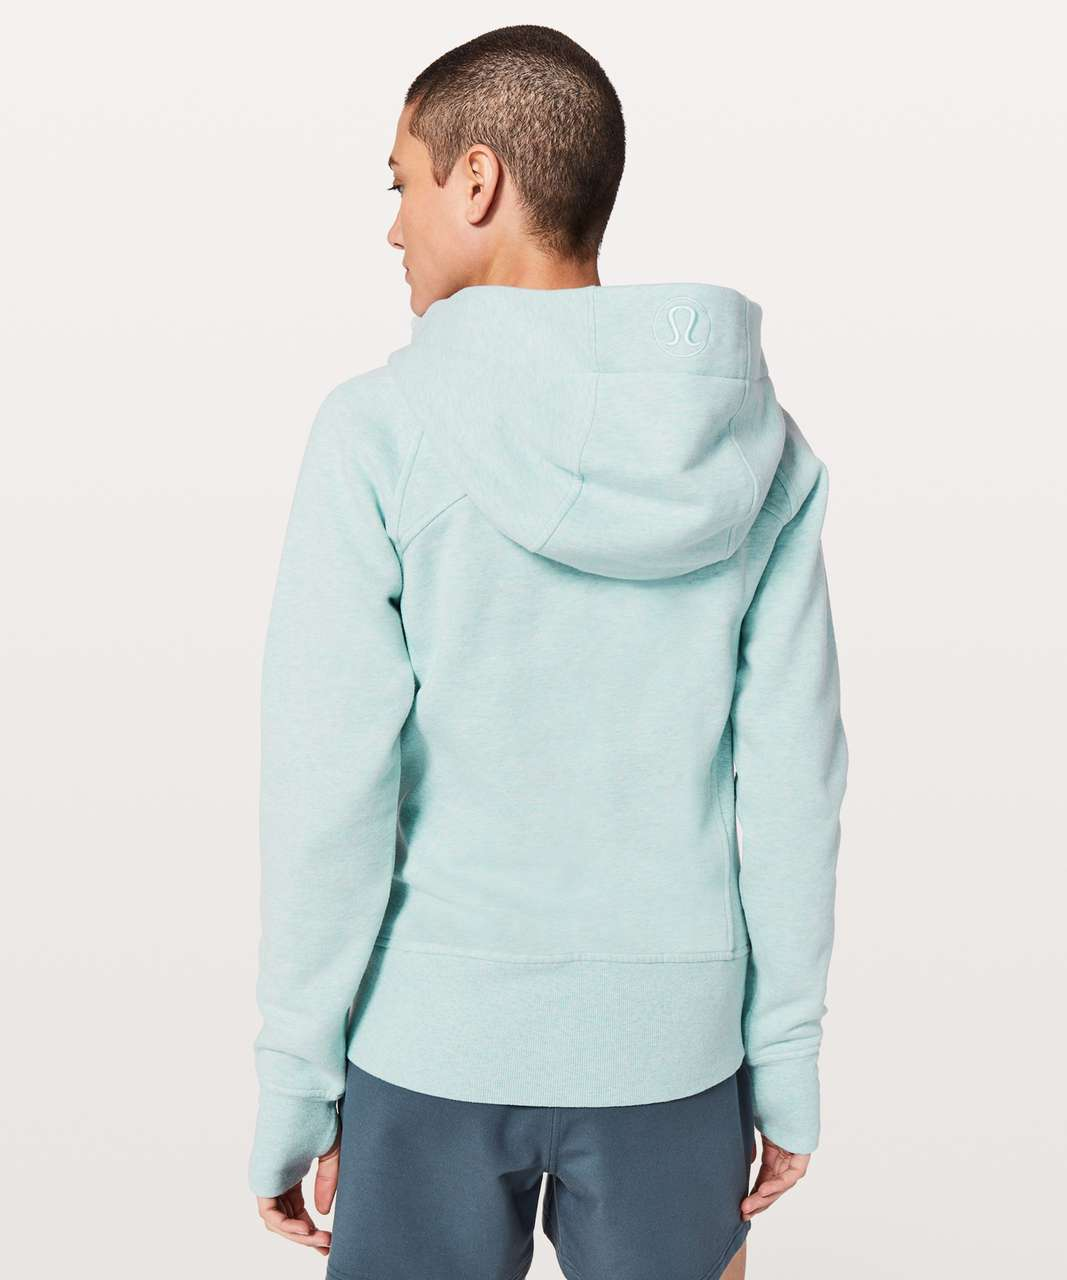 Lululemon Scuba Hoodie *Light Cotton Fleece - Heathered Frosty